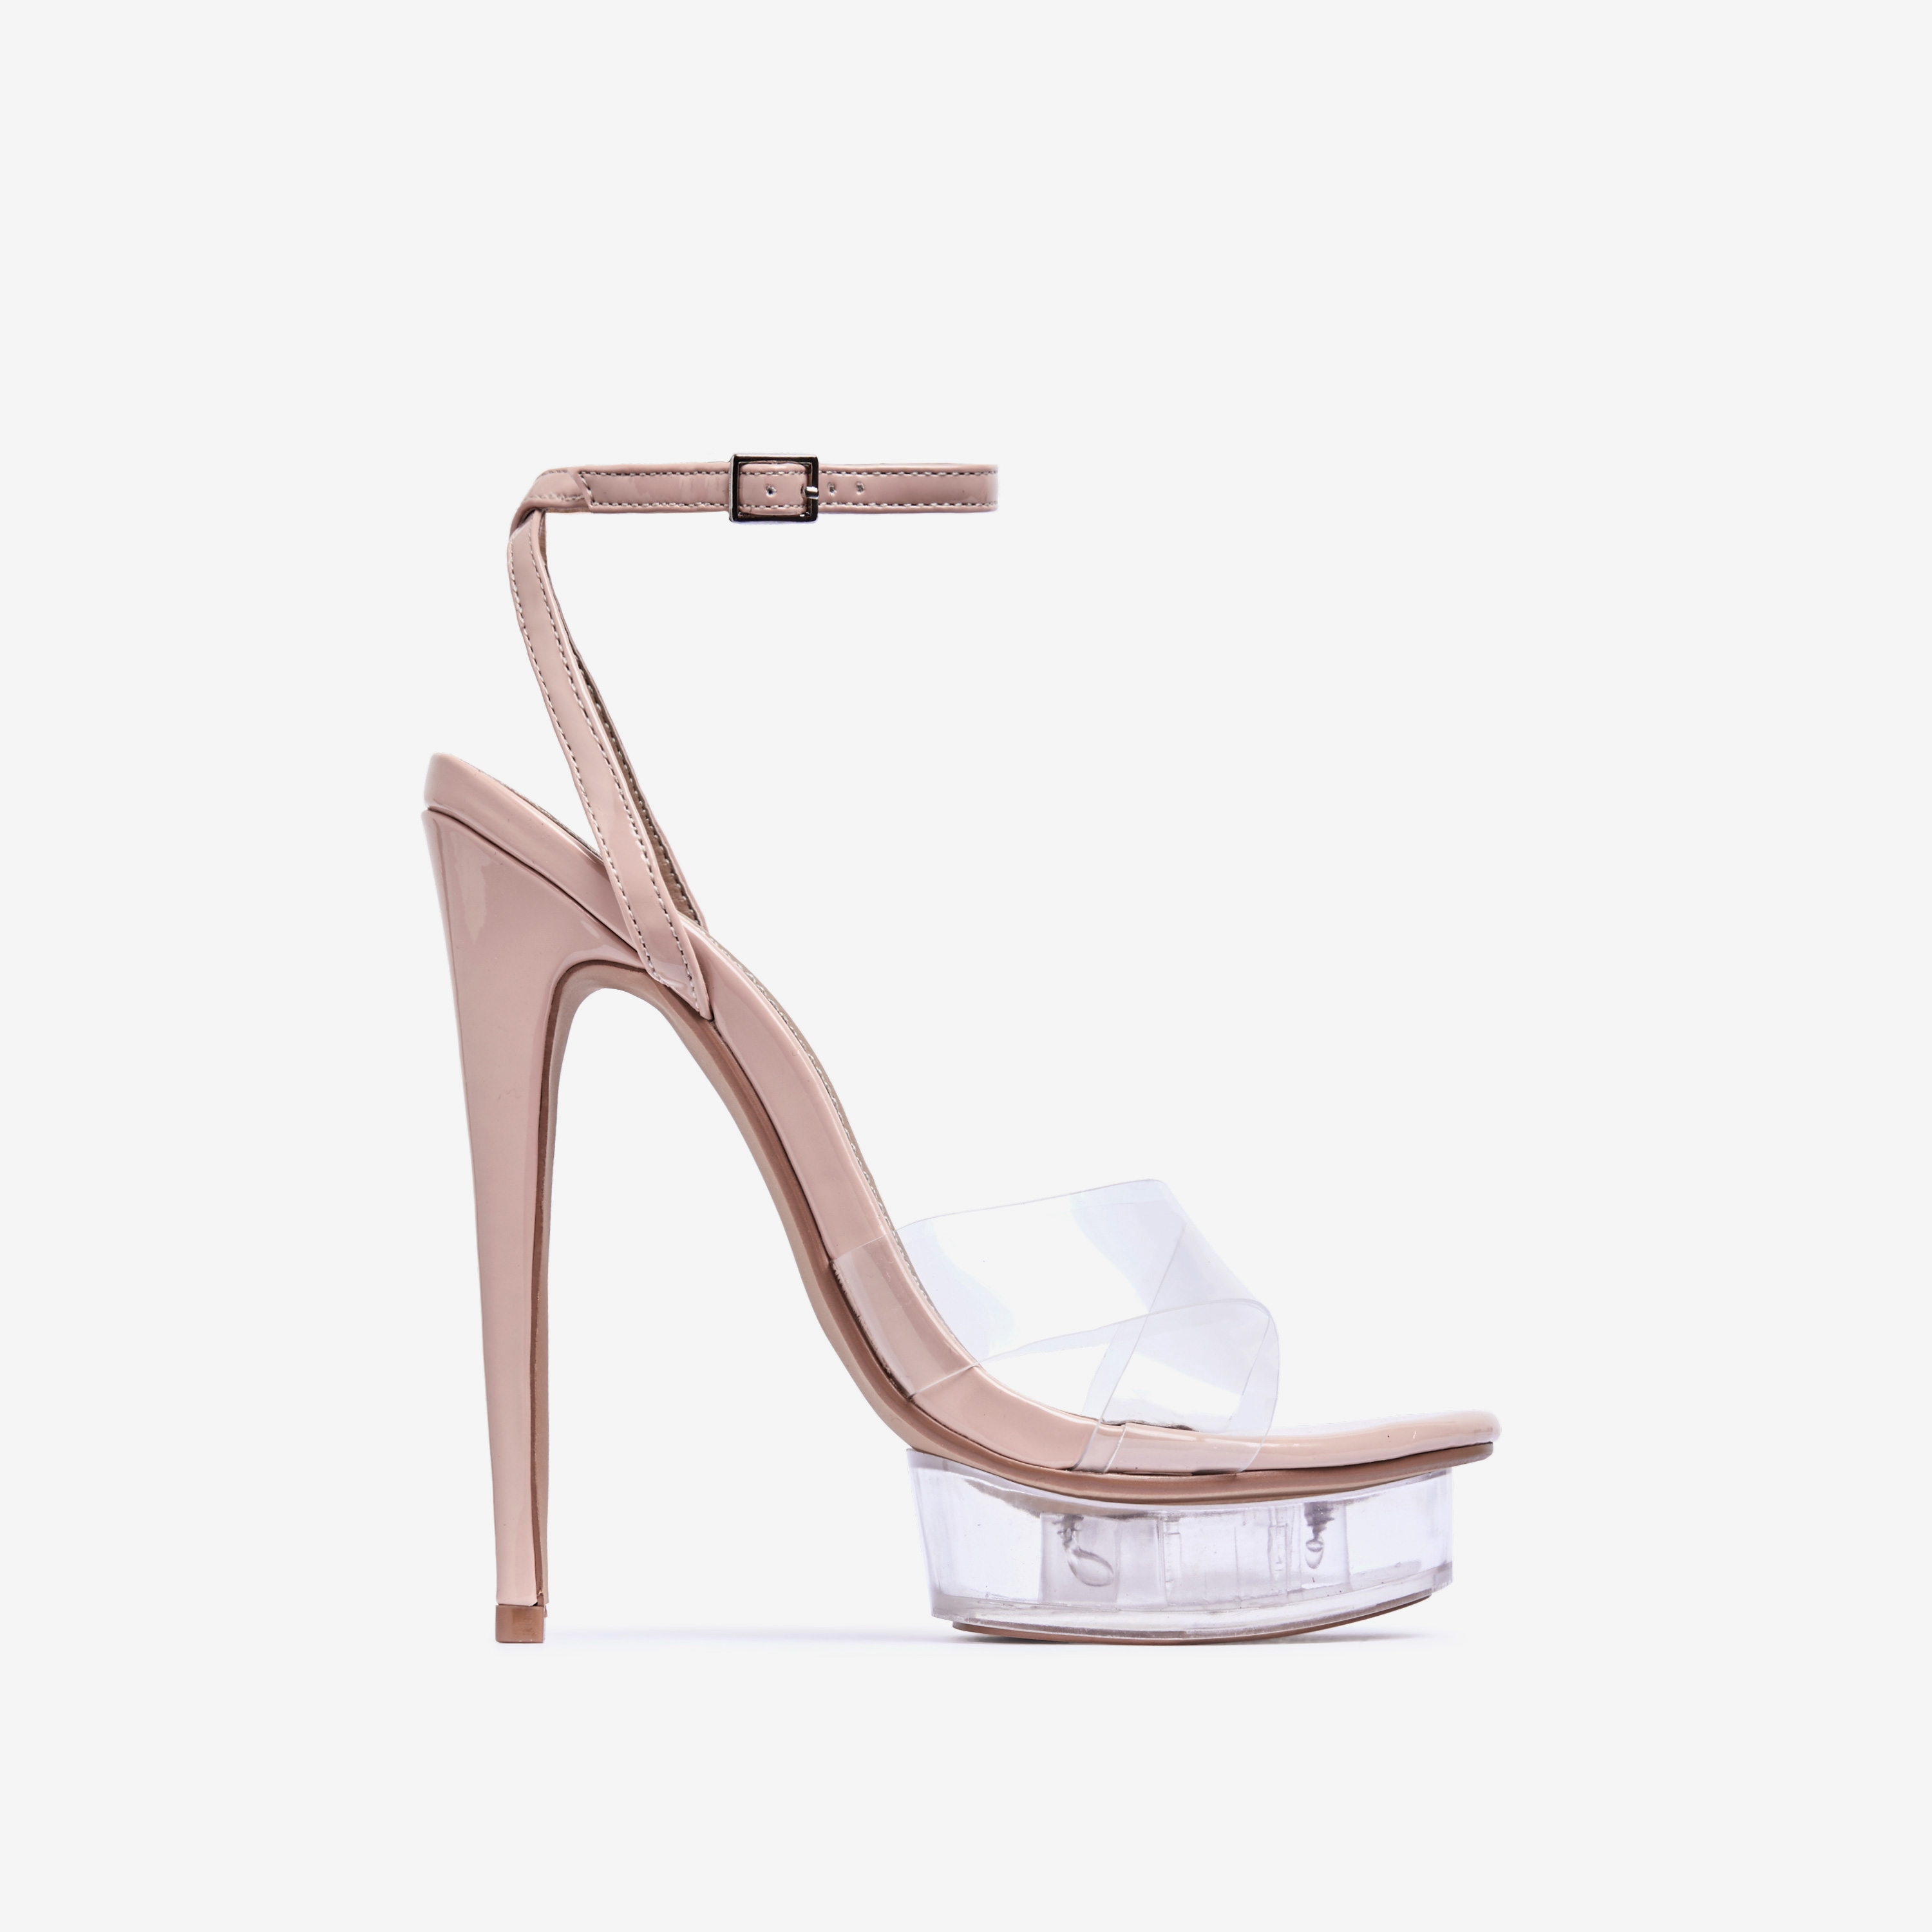 Smoking Barely There Perspex Platform Heel In Nude Patent